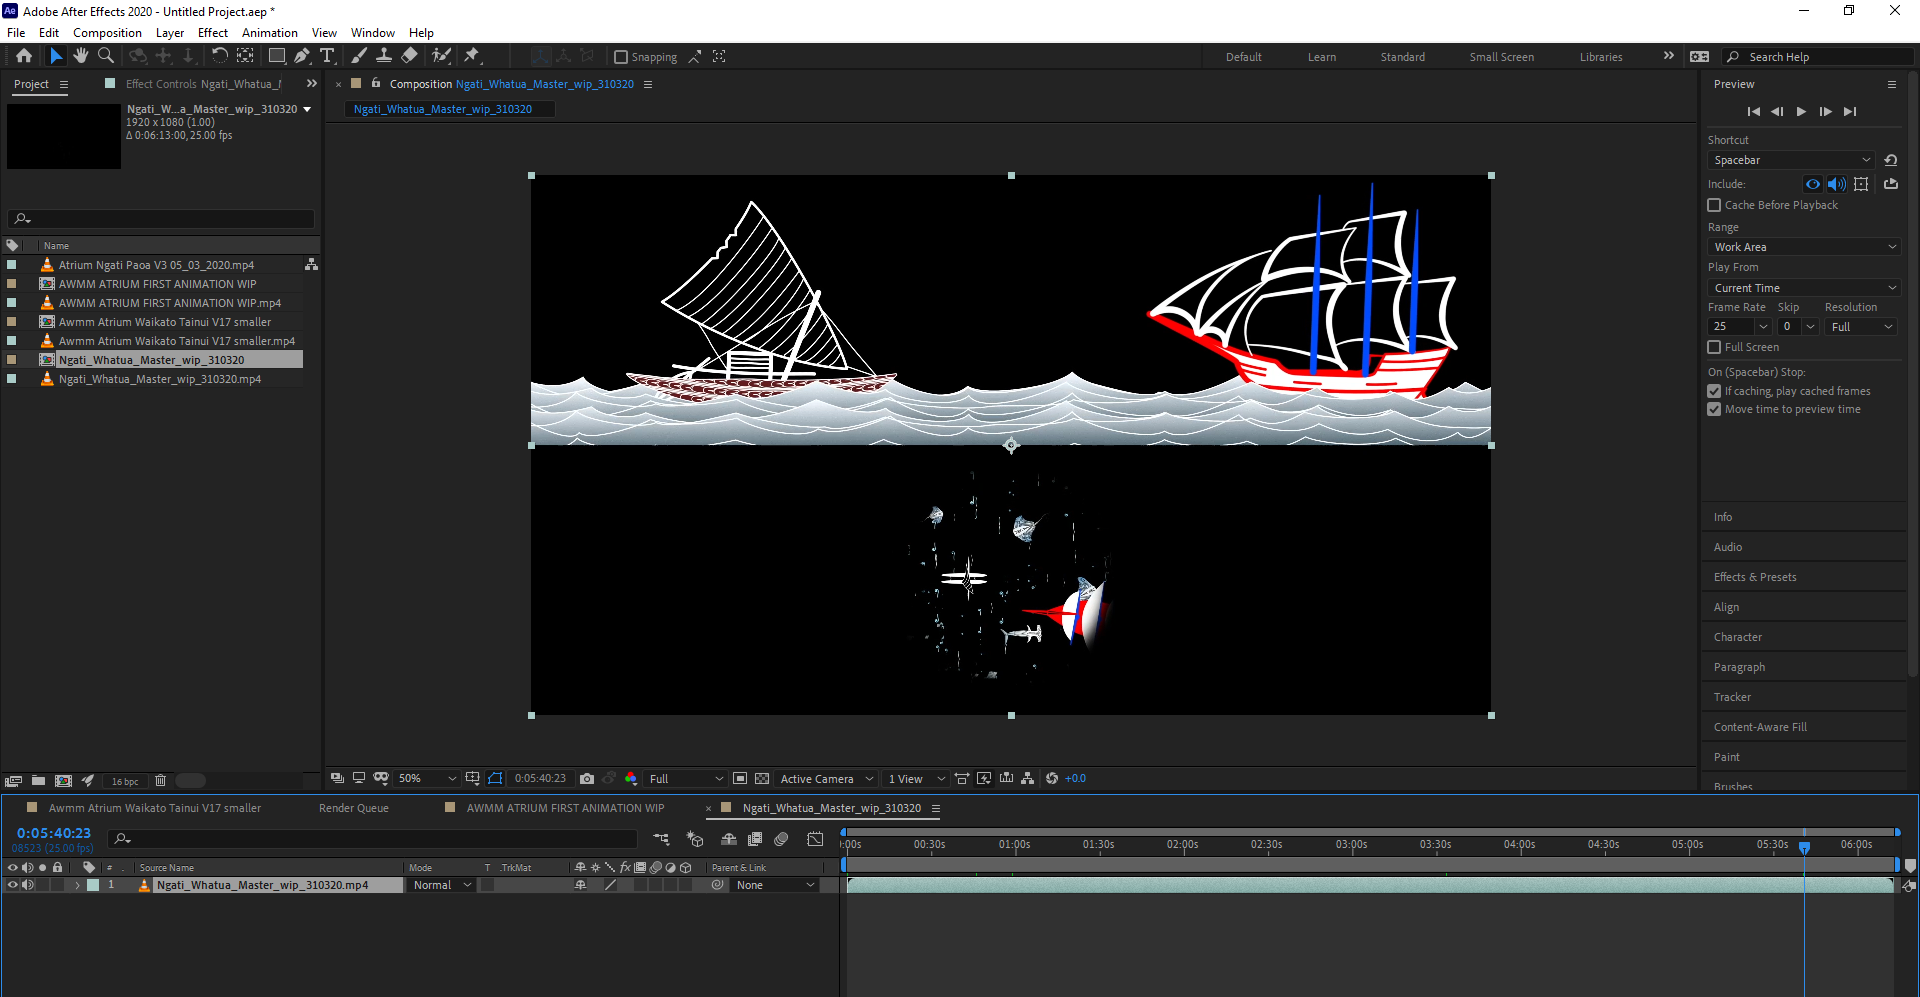 Adobe After Effects 2020 Y AWMM ATRIUM ARCHIVE kato Tainui MASTER 13 01 2021 Awmm Atrium Waikato Tainui timeline V32 aep 23 03 2021 1 05 18 PM